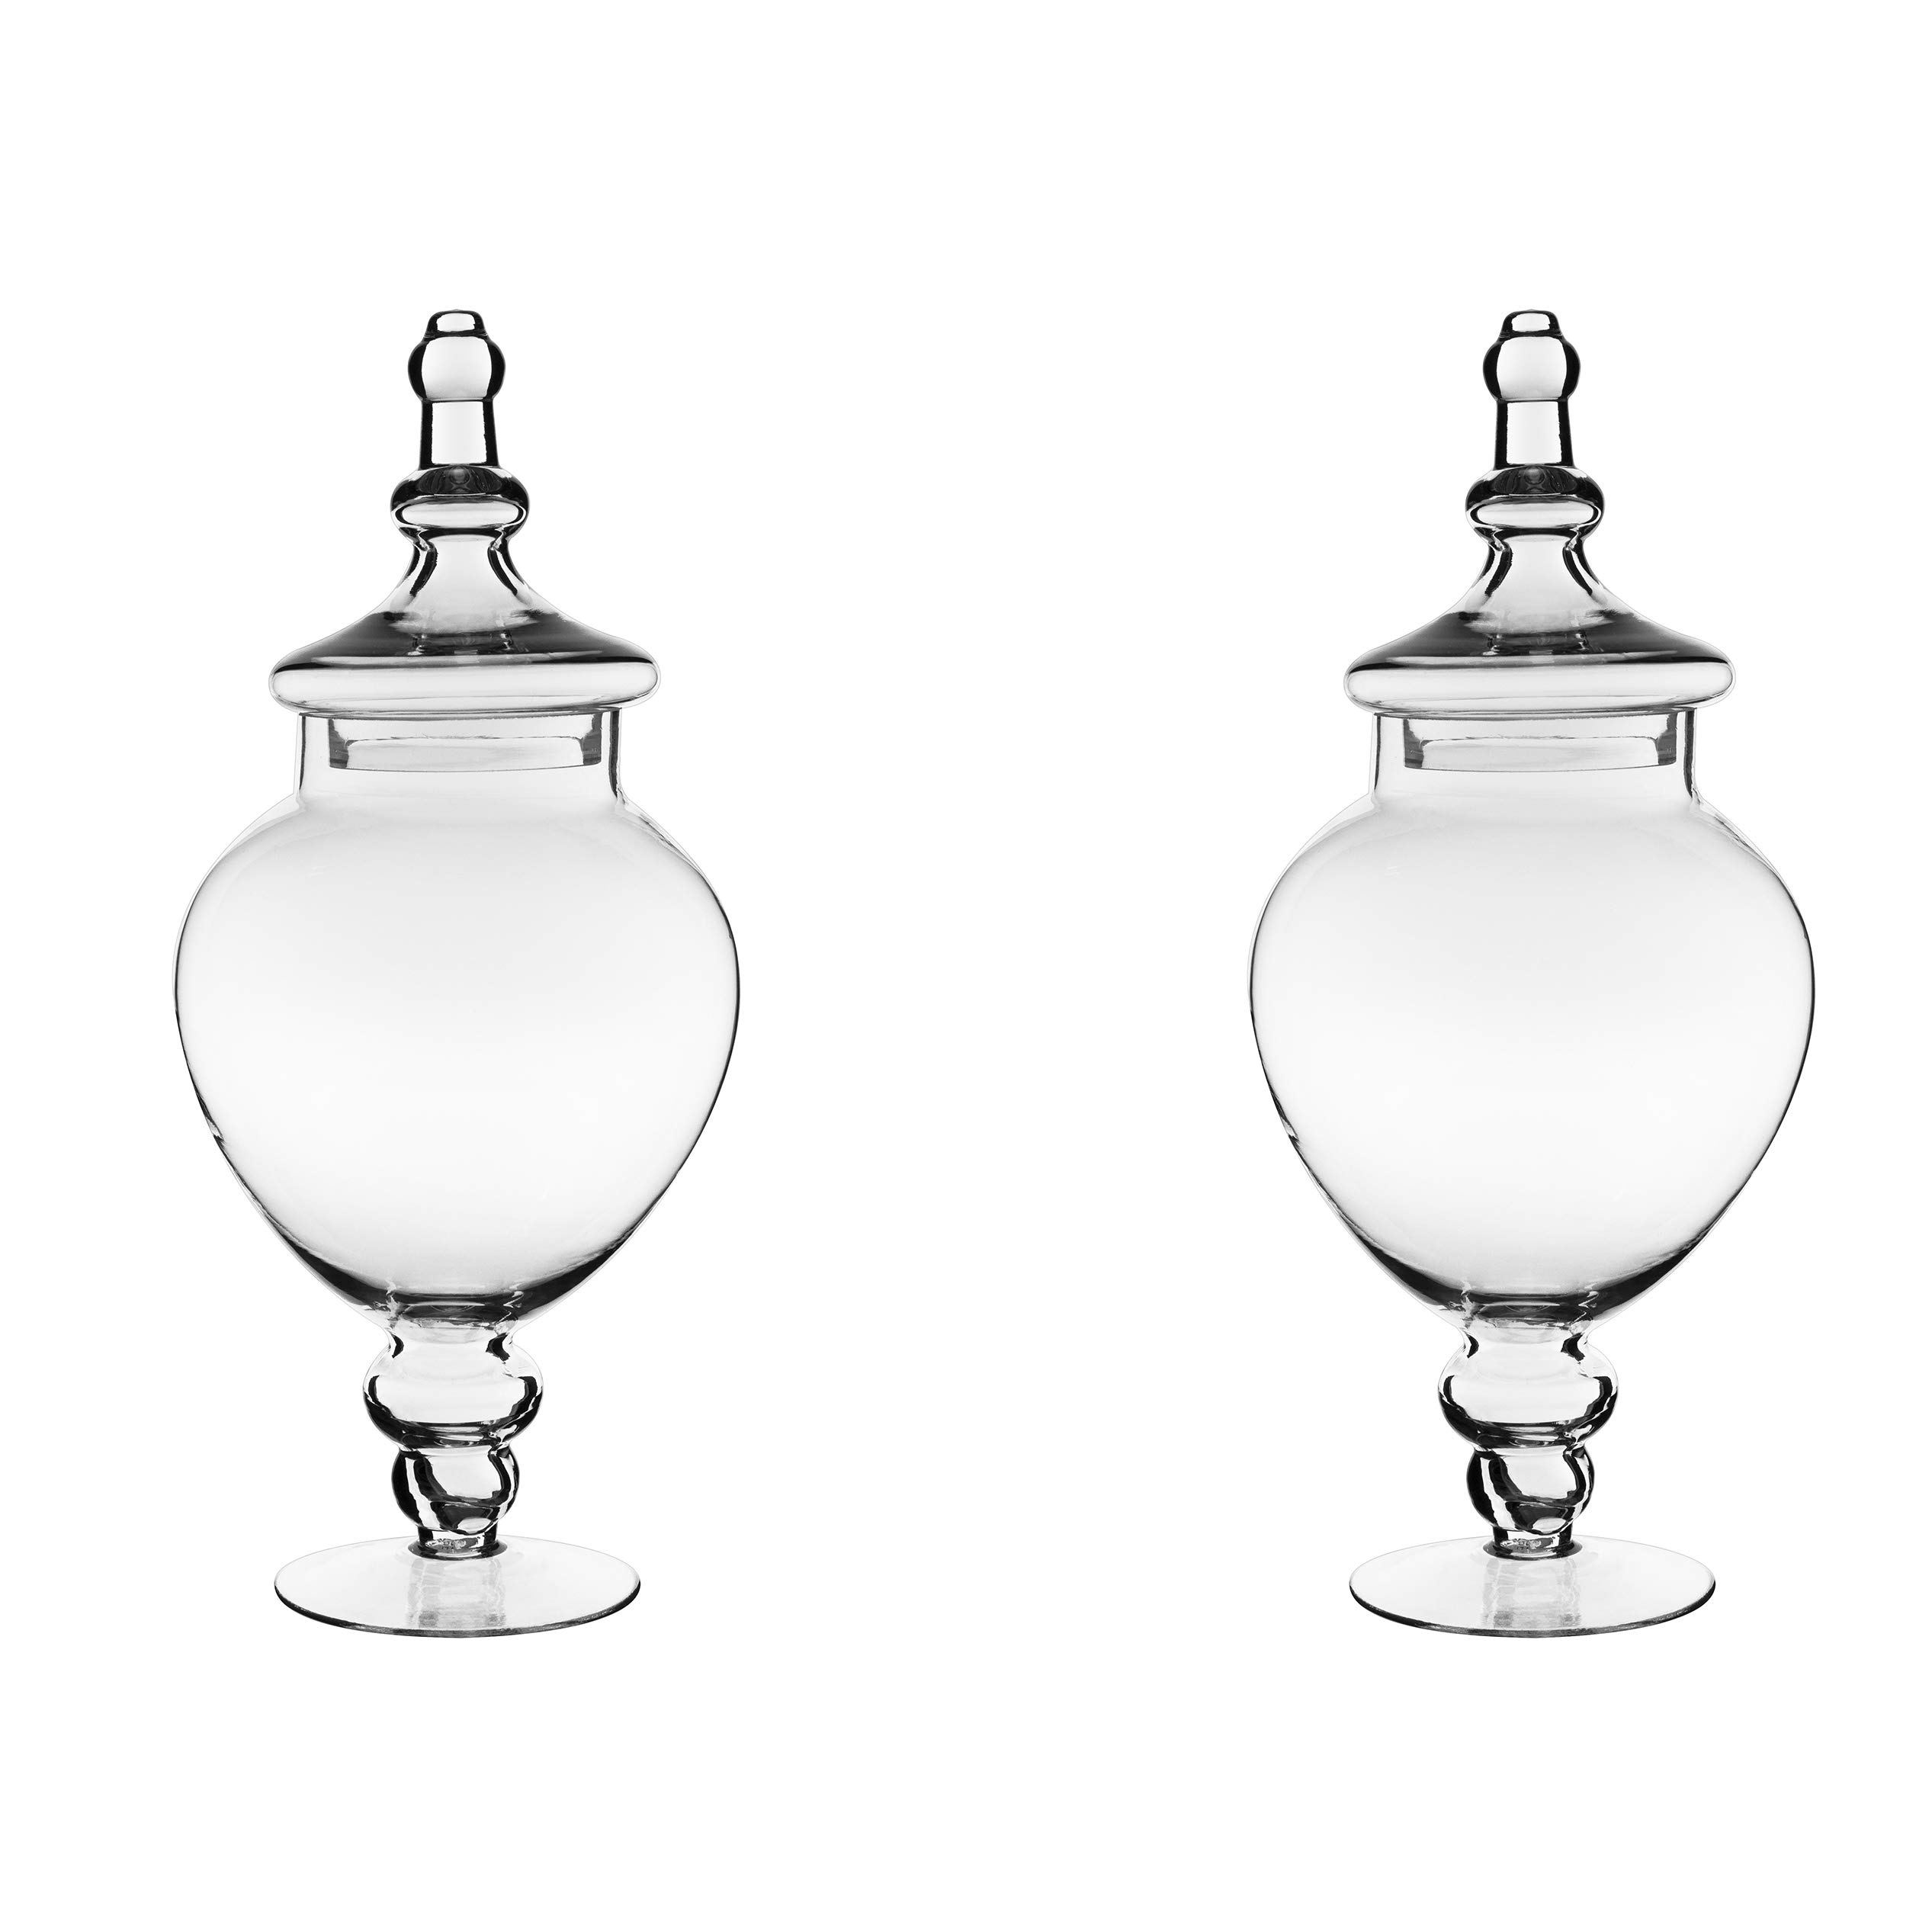 CYS EXCEL Apothecary Jars Pack of 2, Candy Buffet Display, Elegant Storage Jars, Wedding Candy Canisters -Series (1) by CYS EXCEL